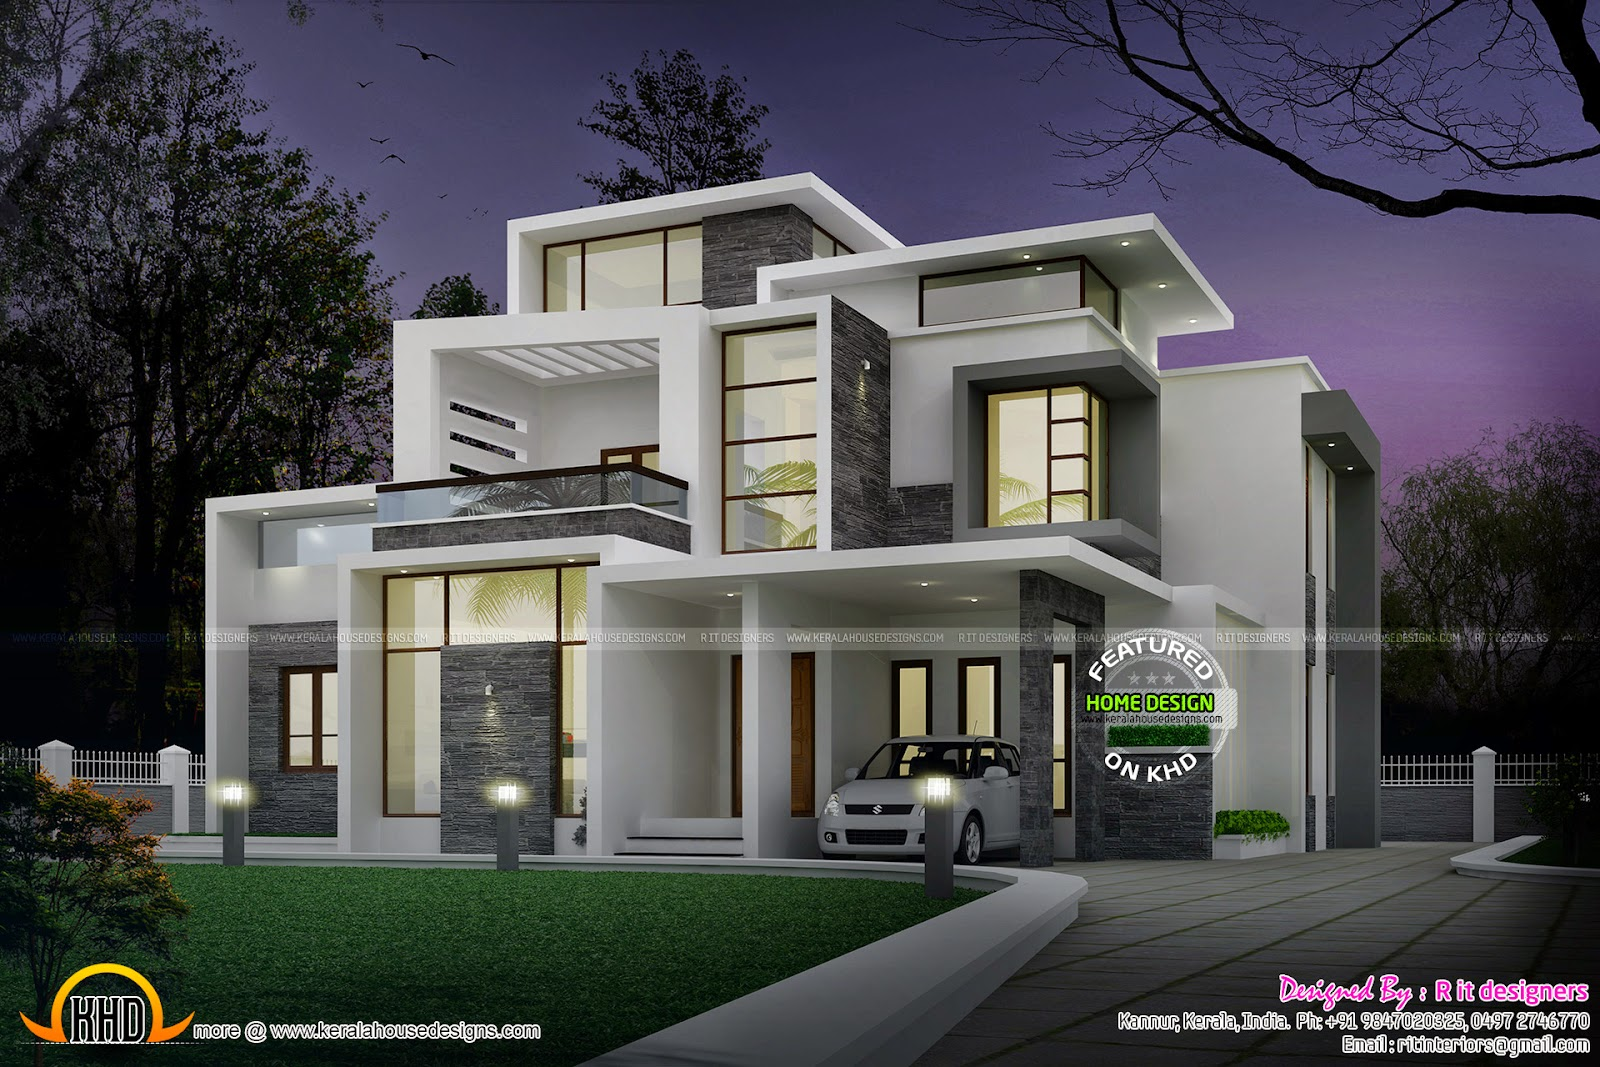 Grand contemporary home design kerala home design and for Modern house designs 2015